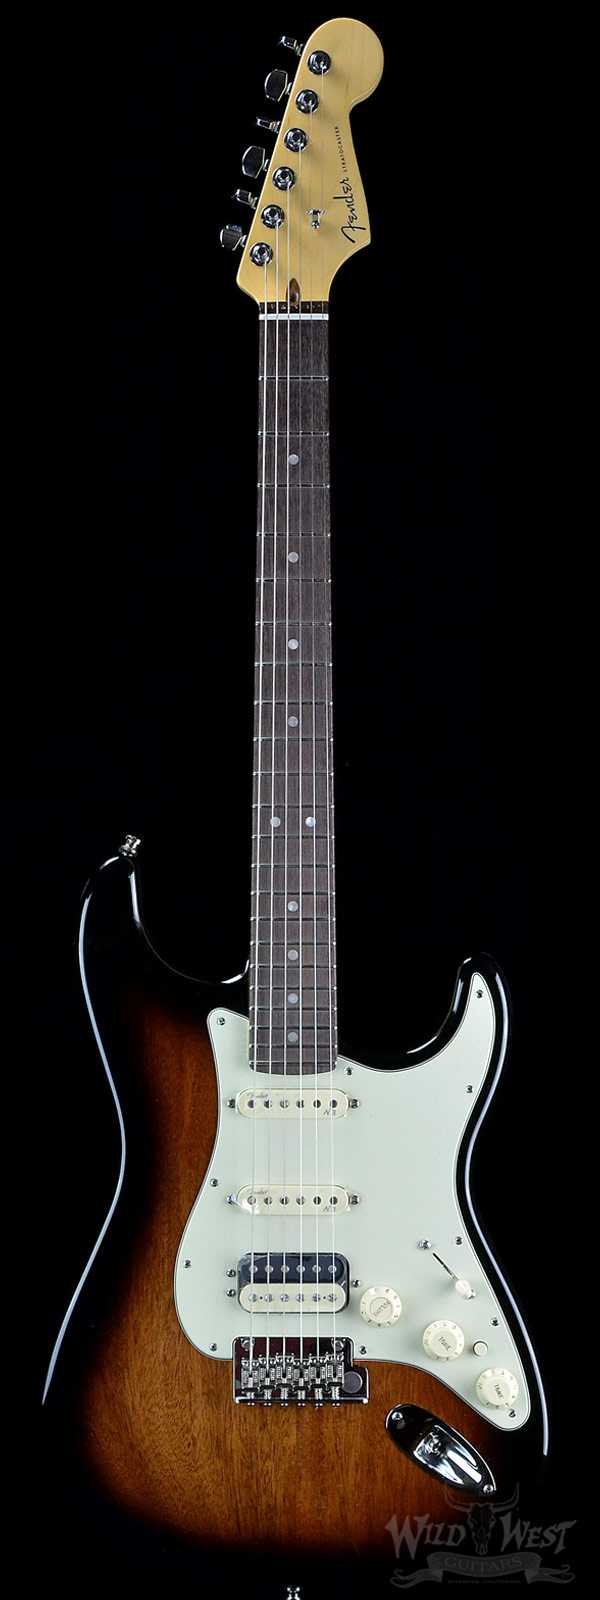 Fender 10 for '15 Limited Edition American Deluxe Mahogany HSS Stratocaster